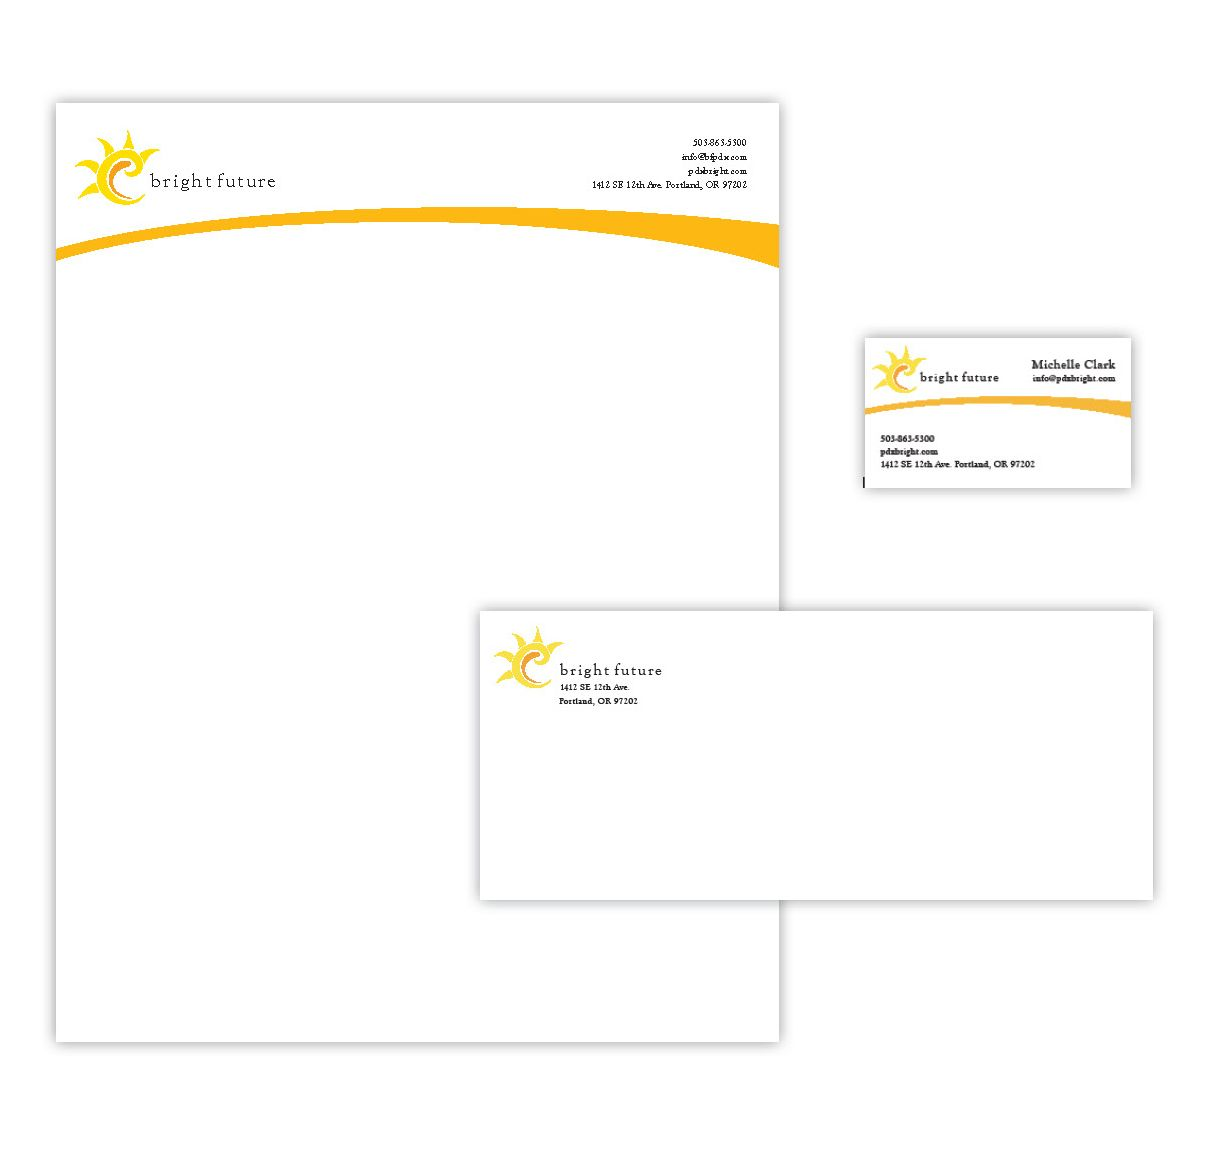 top 25 ideas about letterhead designs on pinterestindigo letterhead design ideas letterhead design ideas